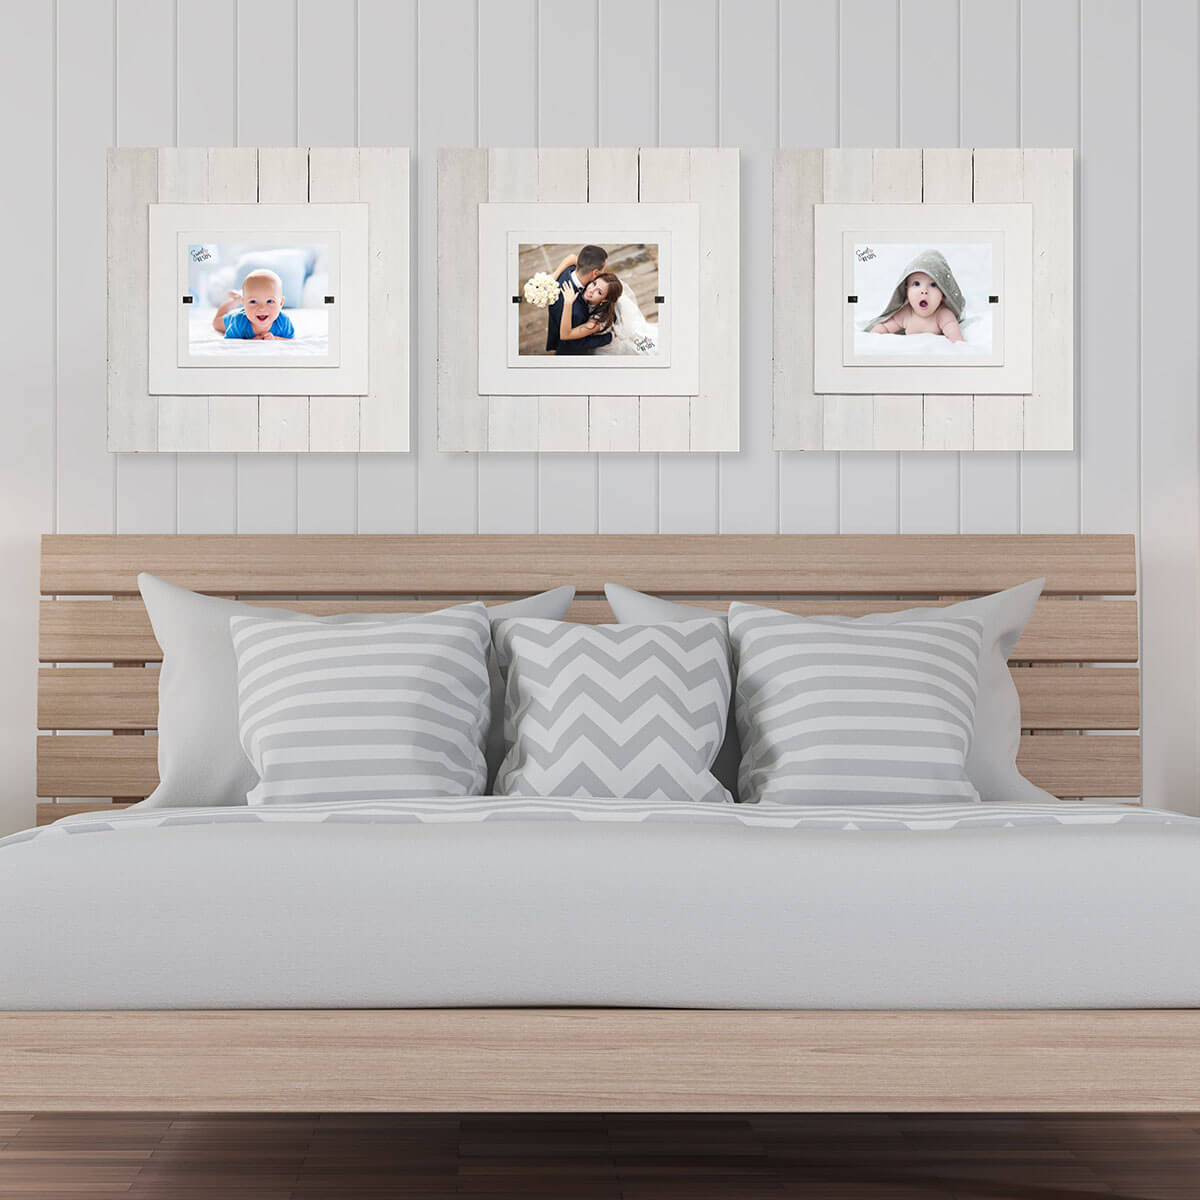 White Washed Beveled Frames for Cohesive Display